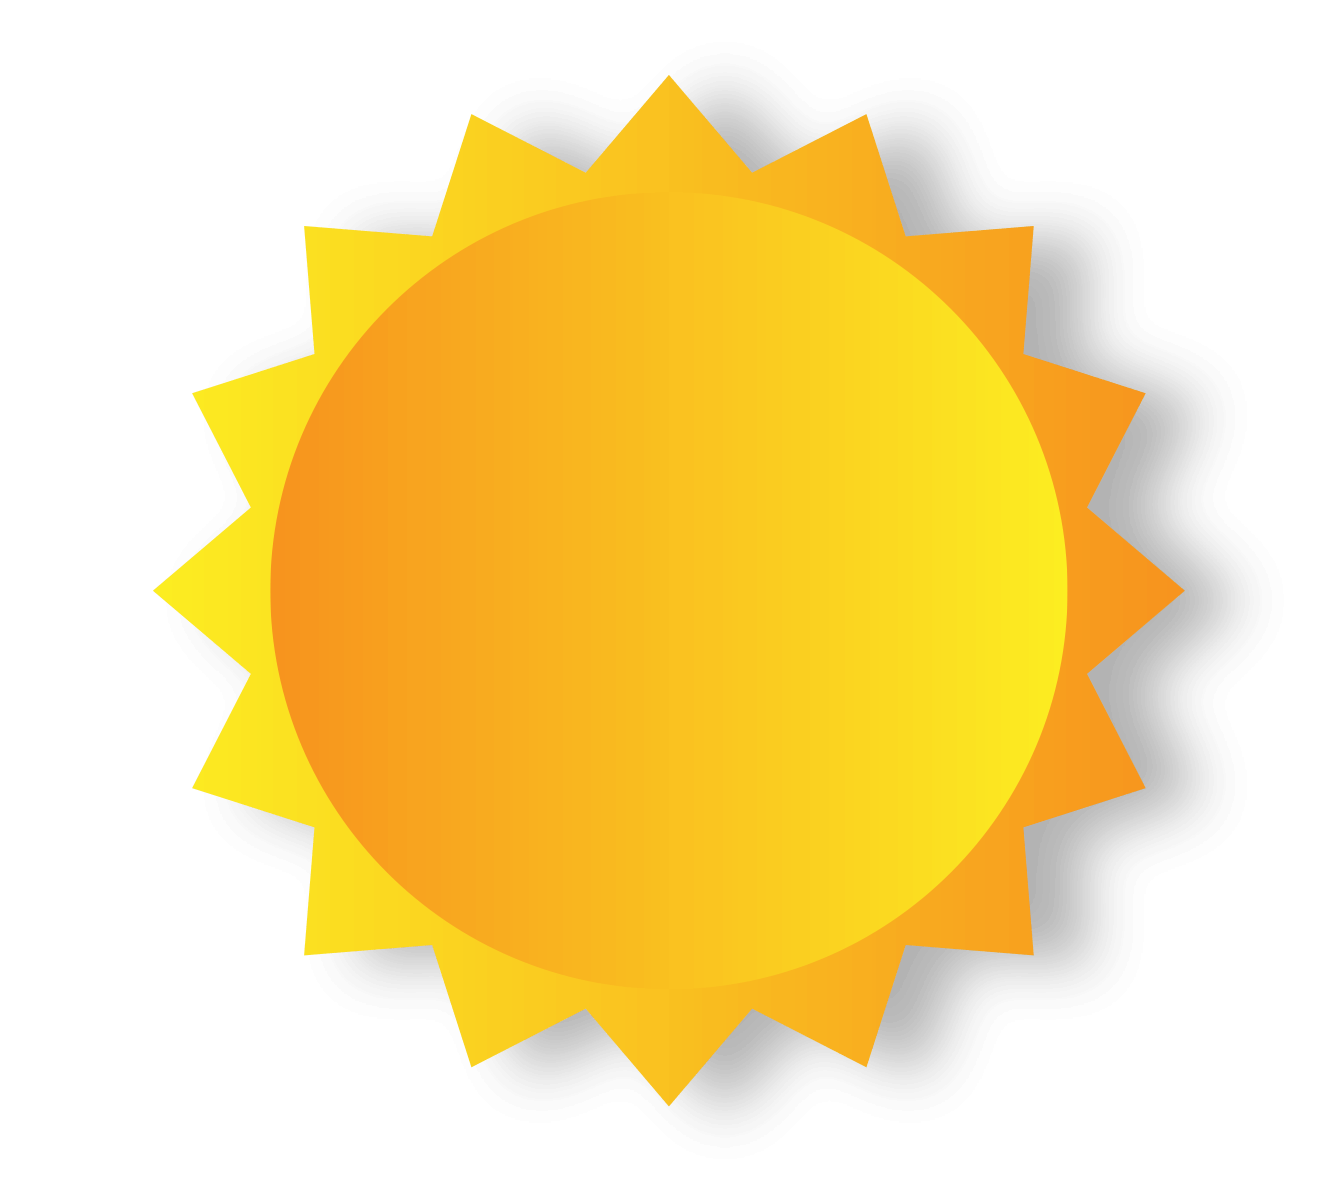 Summer camp happy sun clipart clip transparent download Summer Fun Camp at The Dome | Anchorage clip transparent download